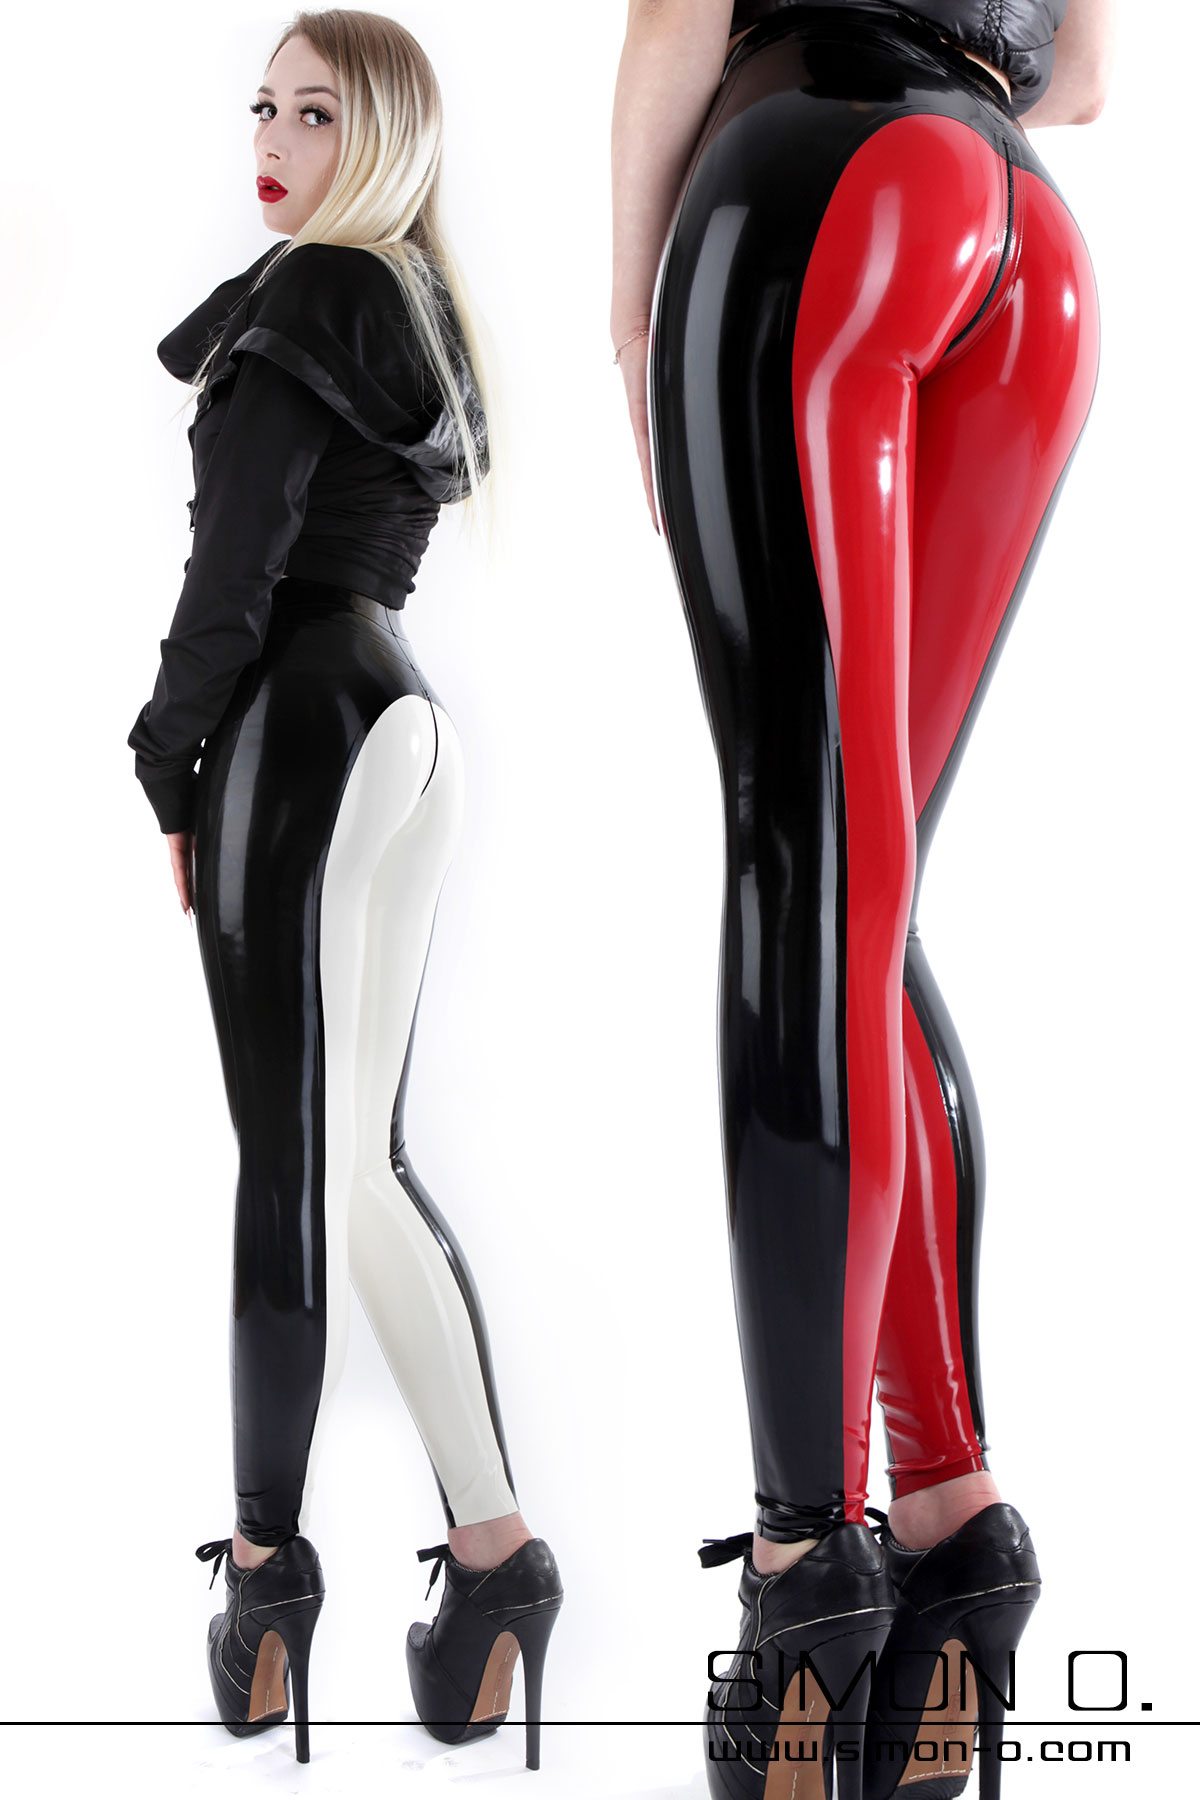 shiny latex riding breeches with zipper in the crotch in the colour black with white